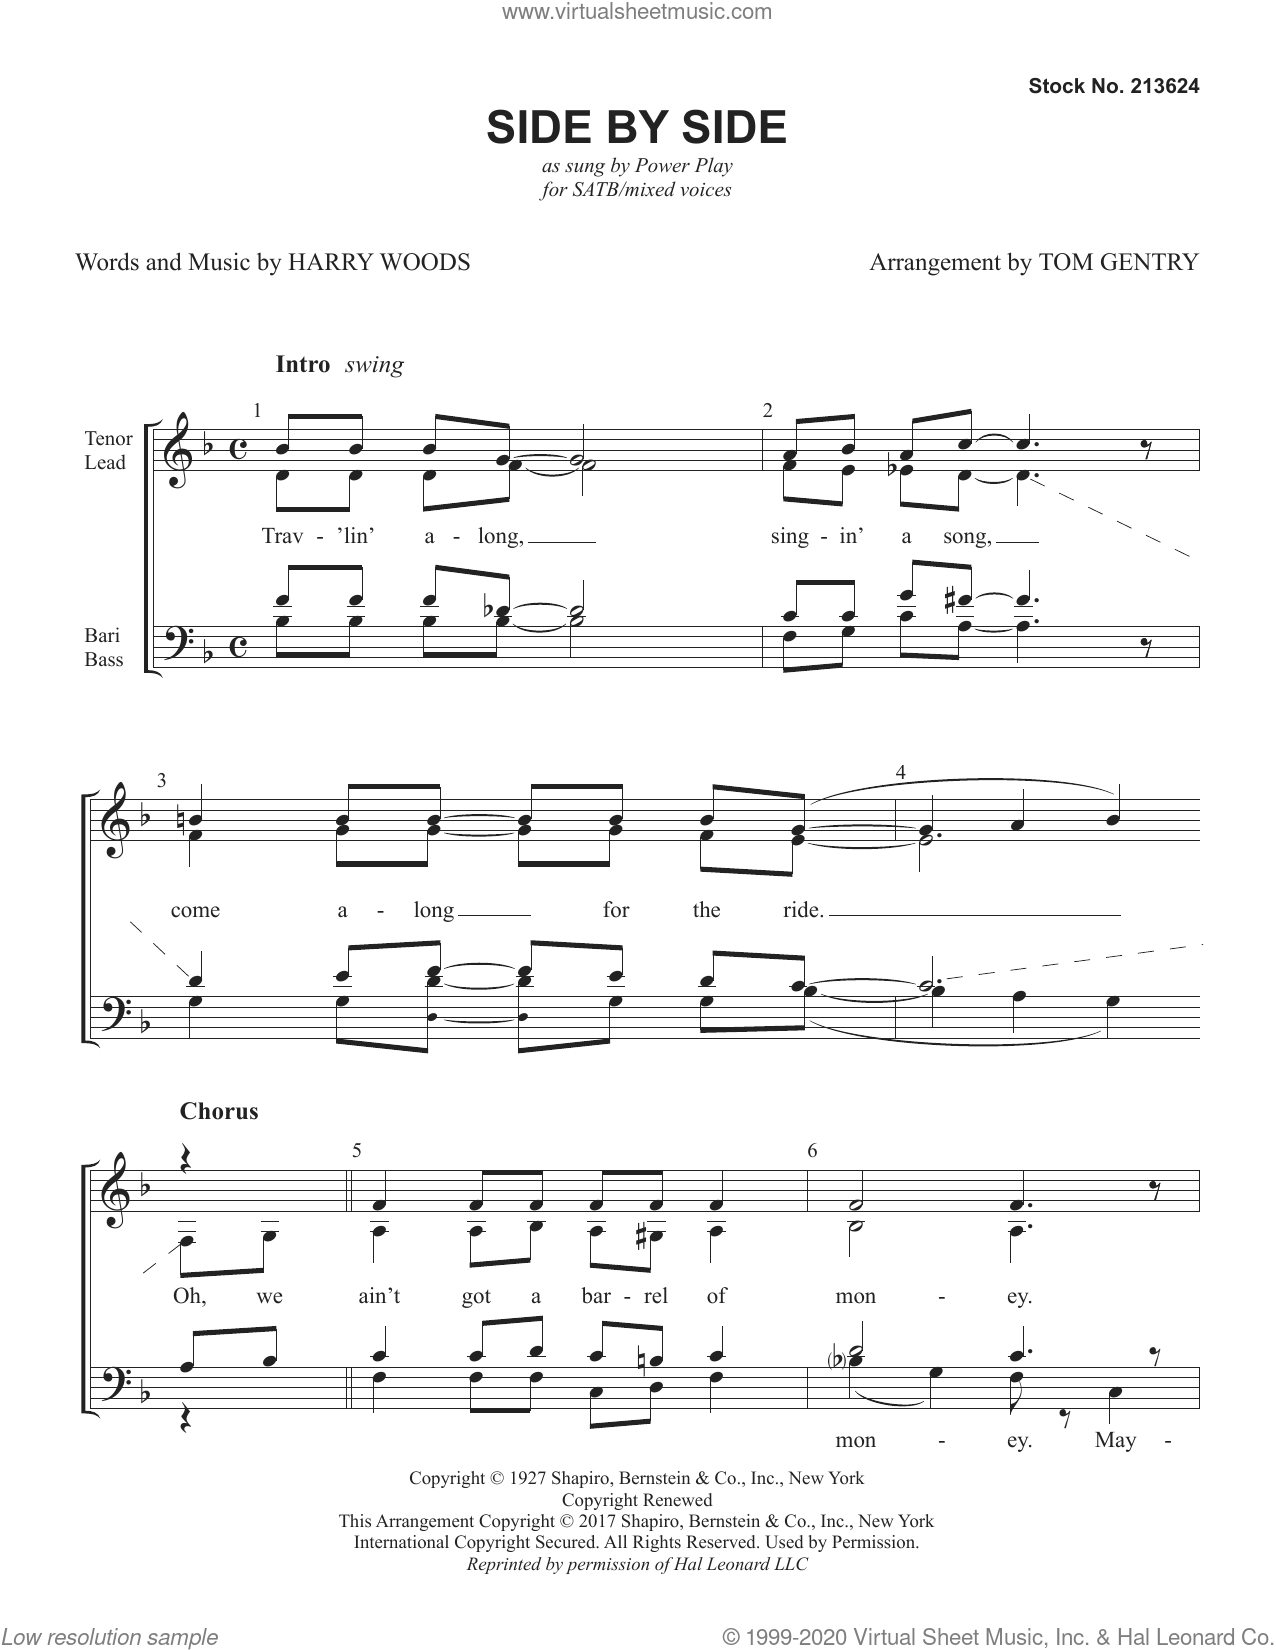 Side By Side (arr. Tom Gentry) sheet music for choir (SATB: soprano, alto, tenor, bass) by Power Play, Tom Gentry and Harry Woods, intermediate skill level